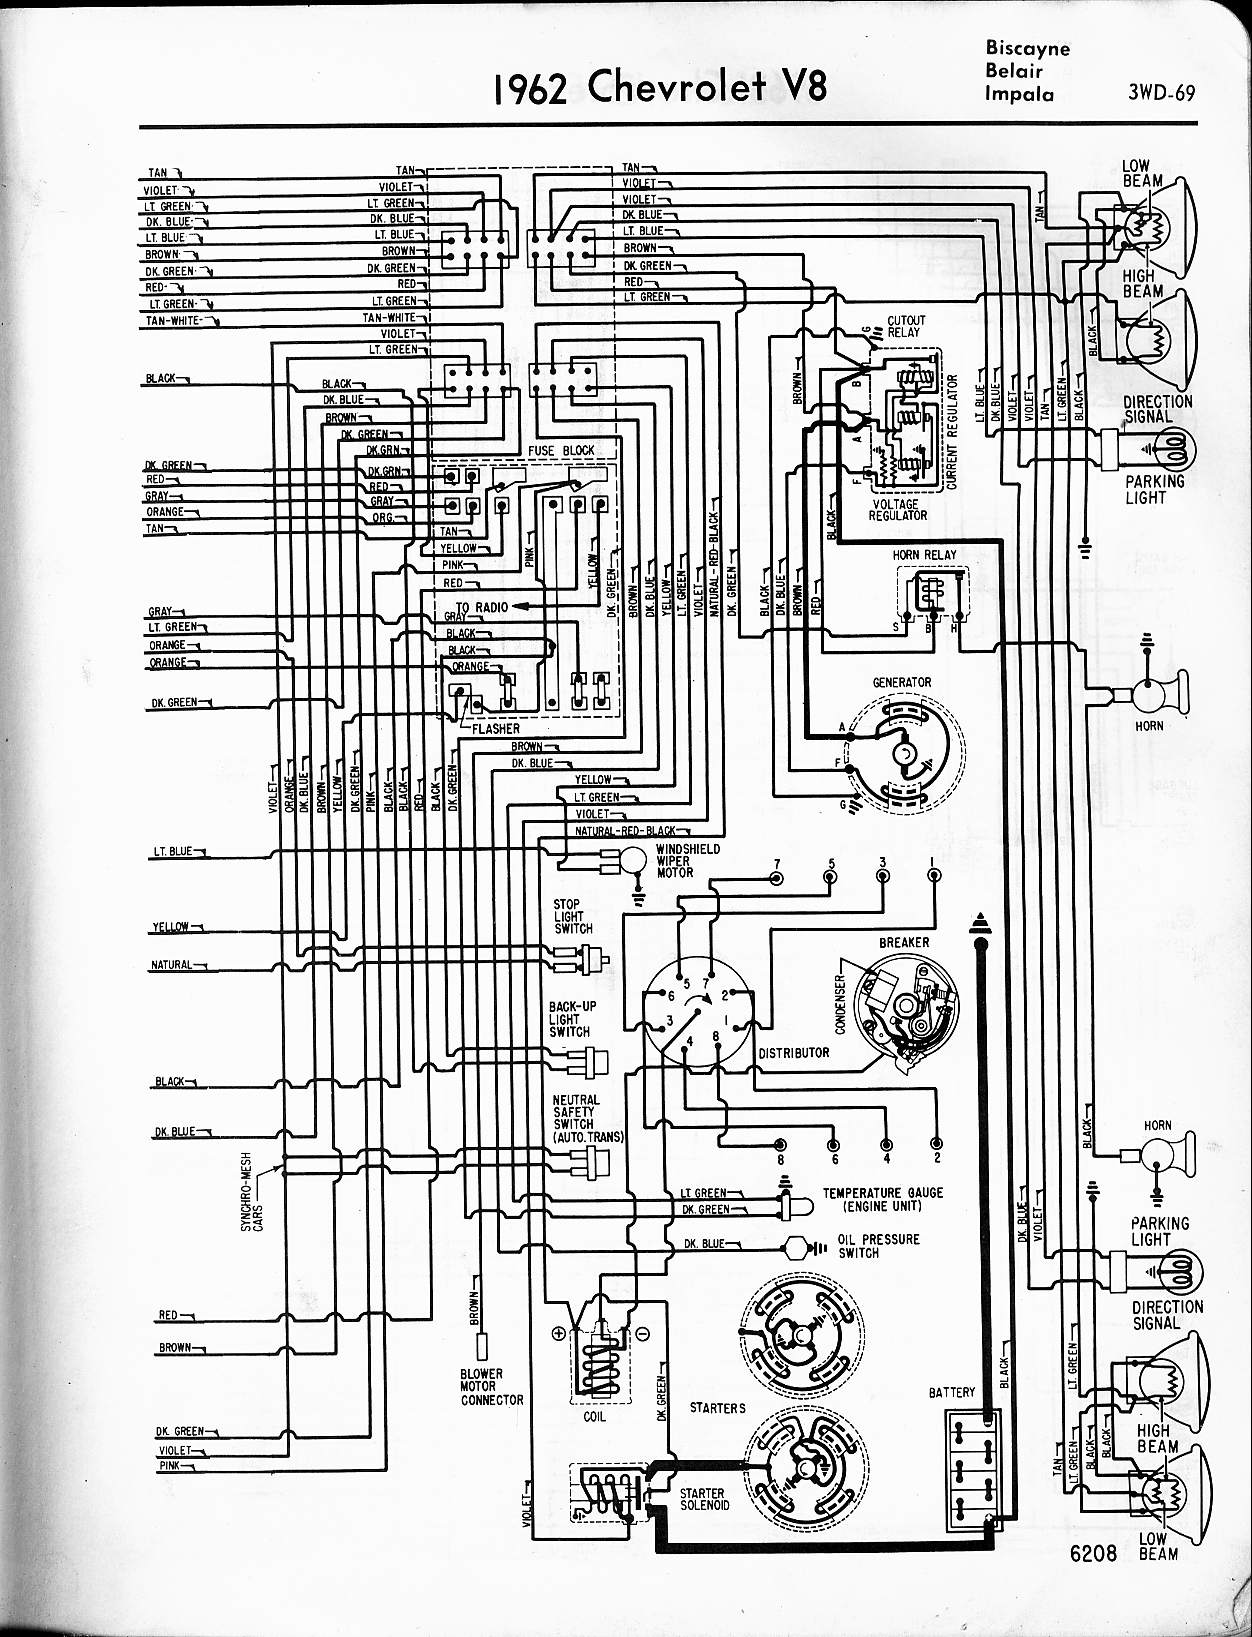 1962 impala wiring diagram catalogue of schemas 1959 Chevy Impala Wiring Diagram fuse diagram for 1959 chevy impala